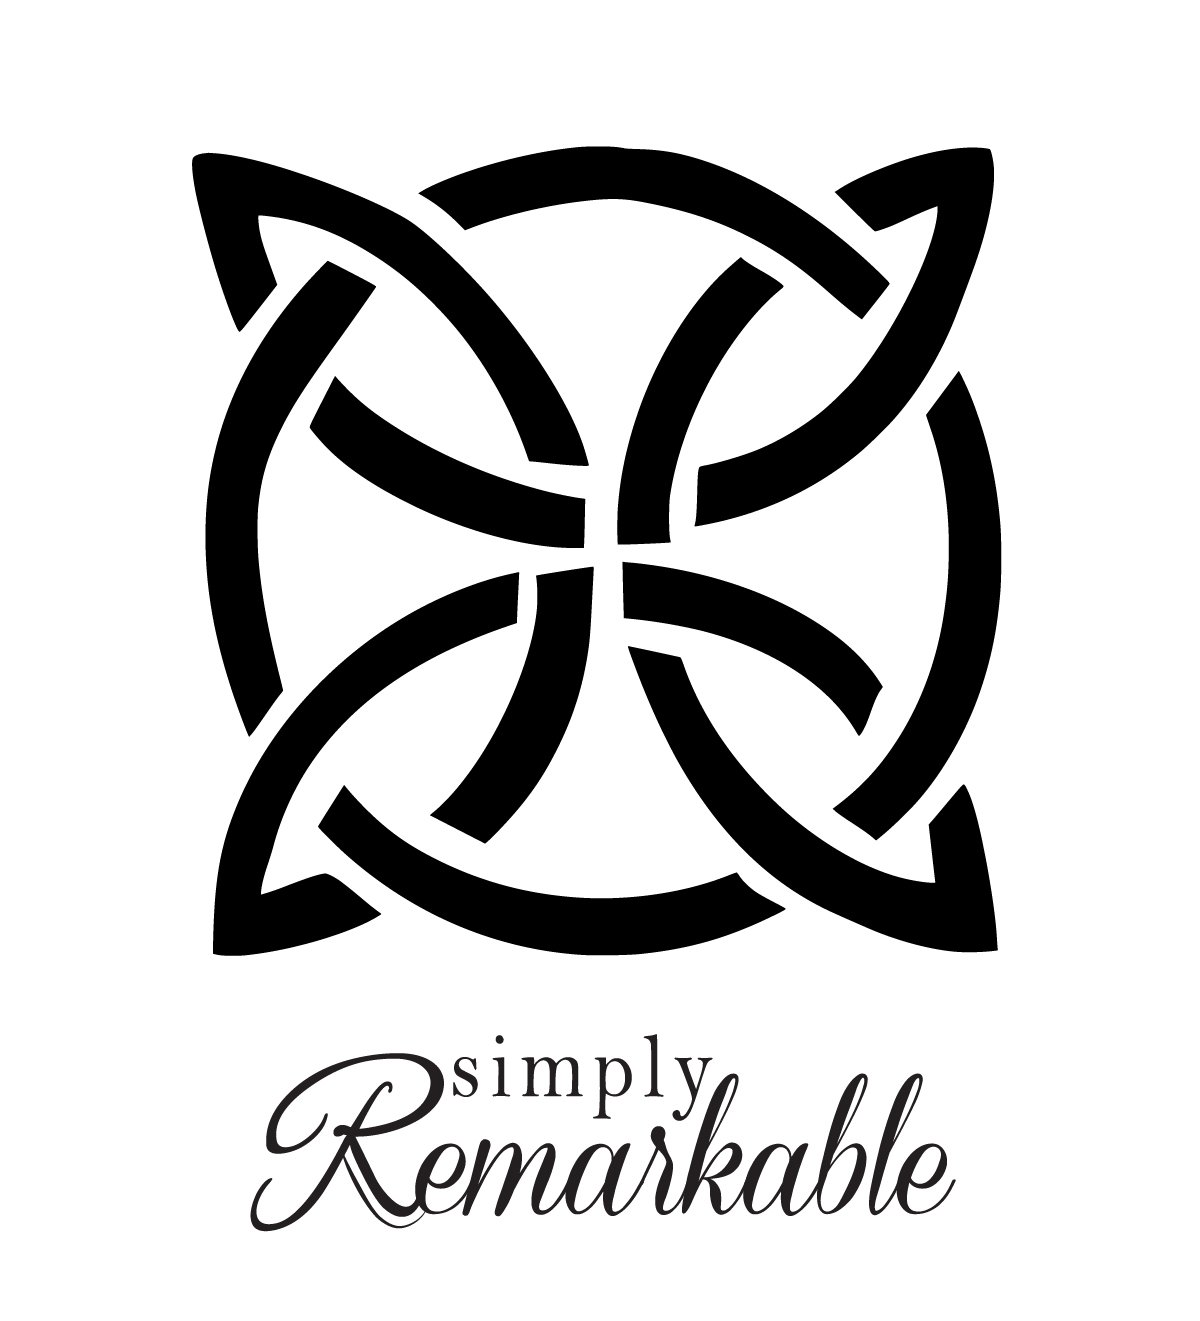 Size 4.2 x 4.2 inches Vinyl Decal Sticker for Computer Wall Car Mac Macbook and More Celtic Knot